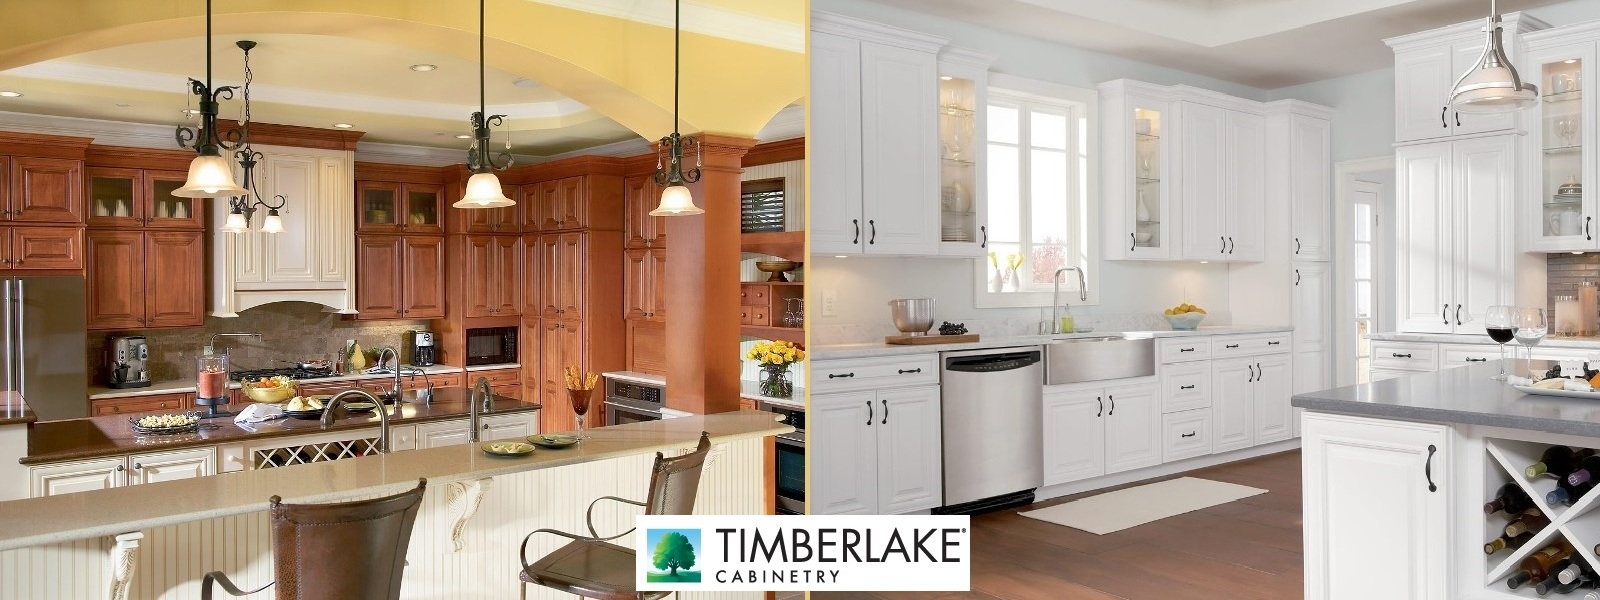 Timberlake White Kitchen Cabinets